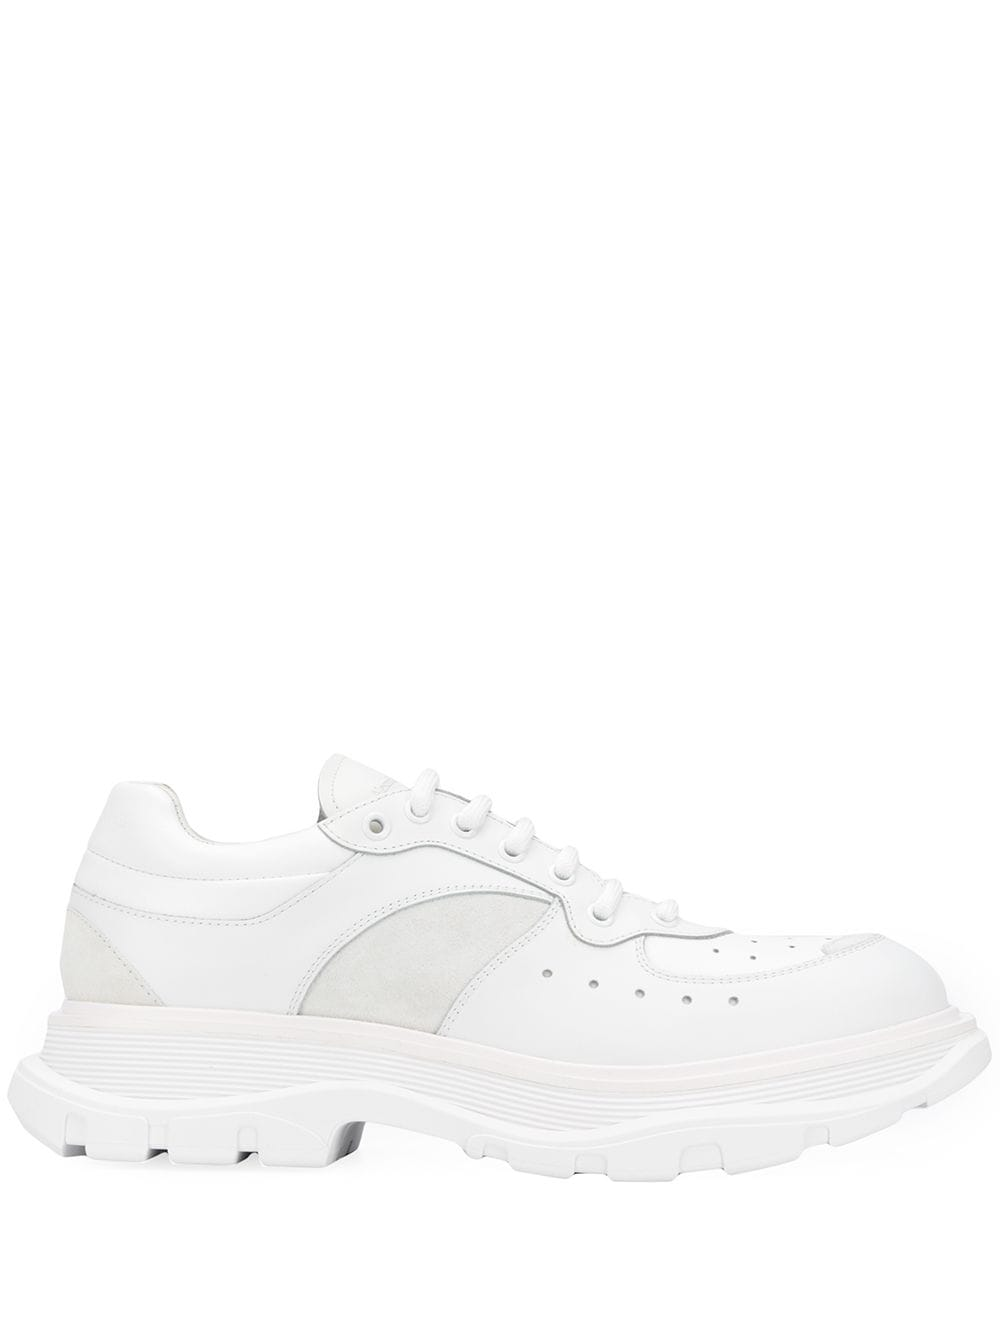 Alexander McQueen Tread Slick Sneakers White